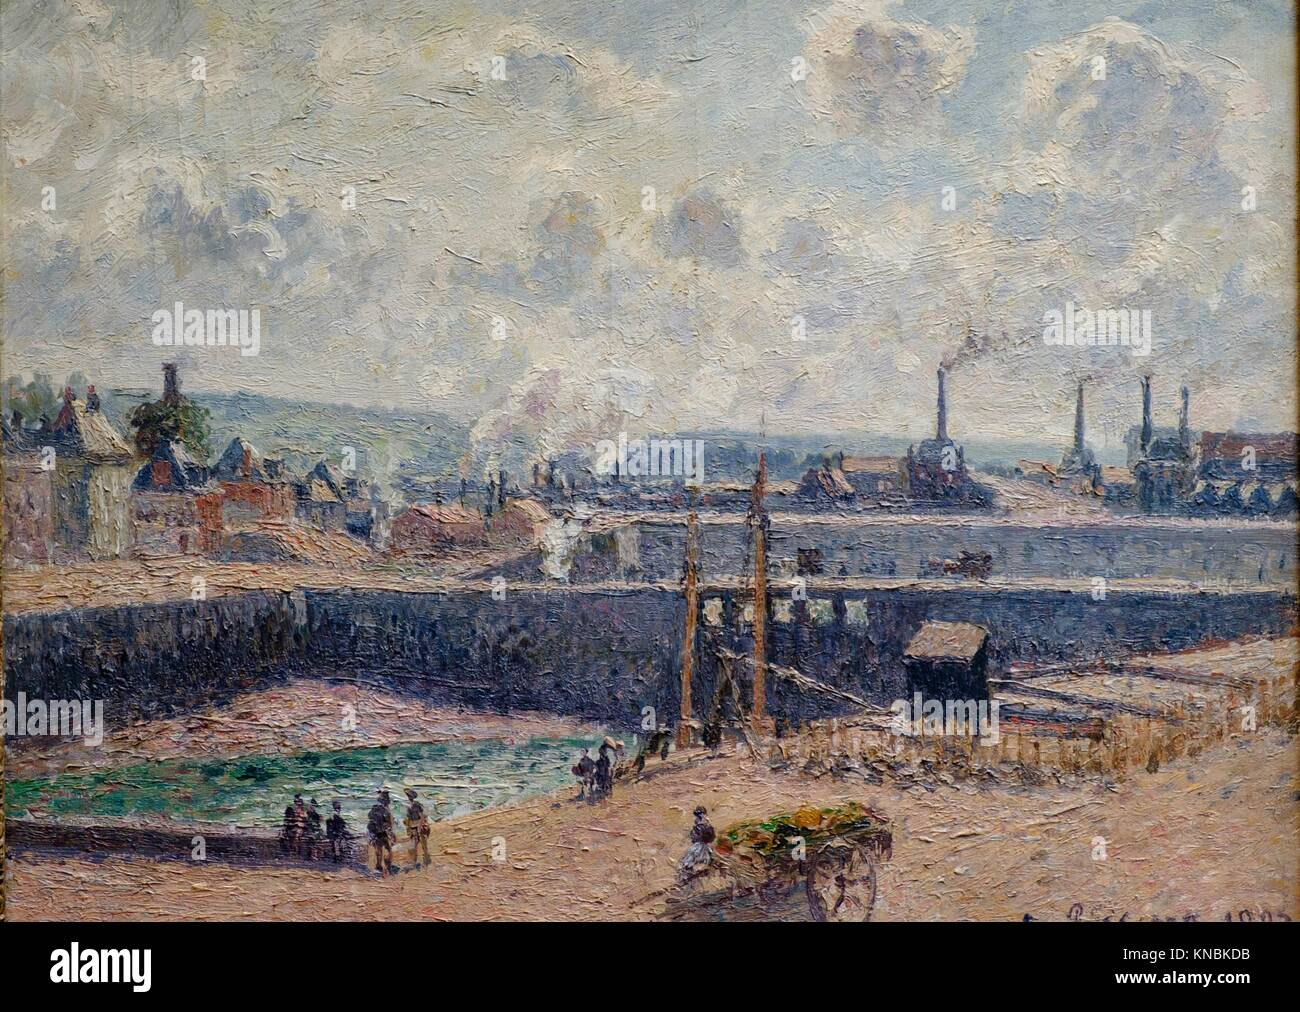 Art painting camille pissarro stock photos art painting for Toile bassin